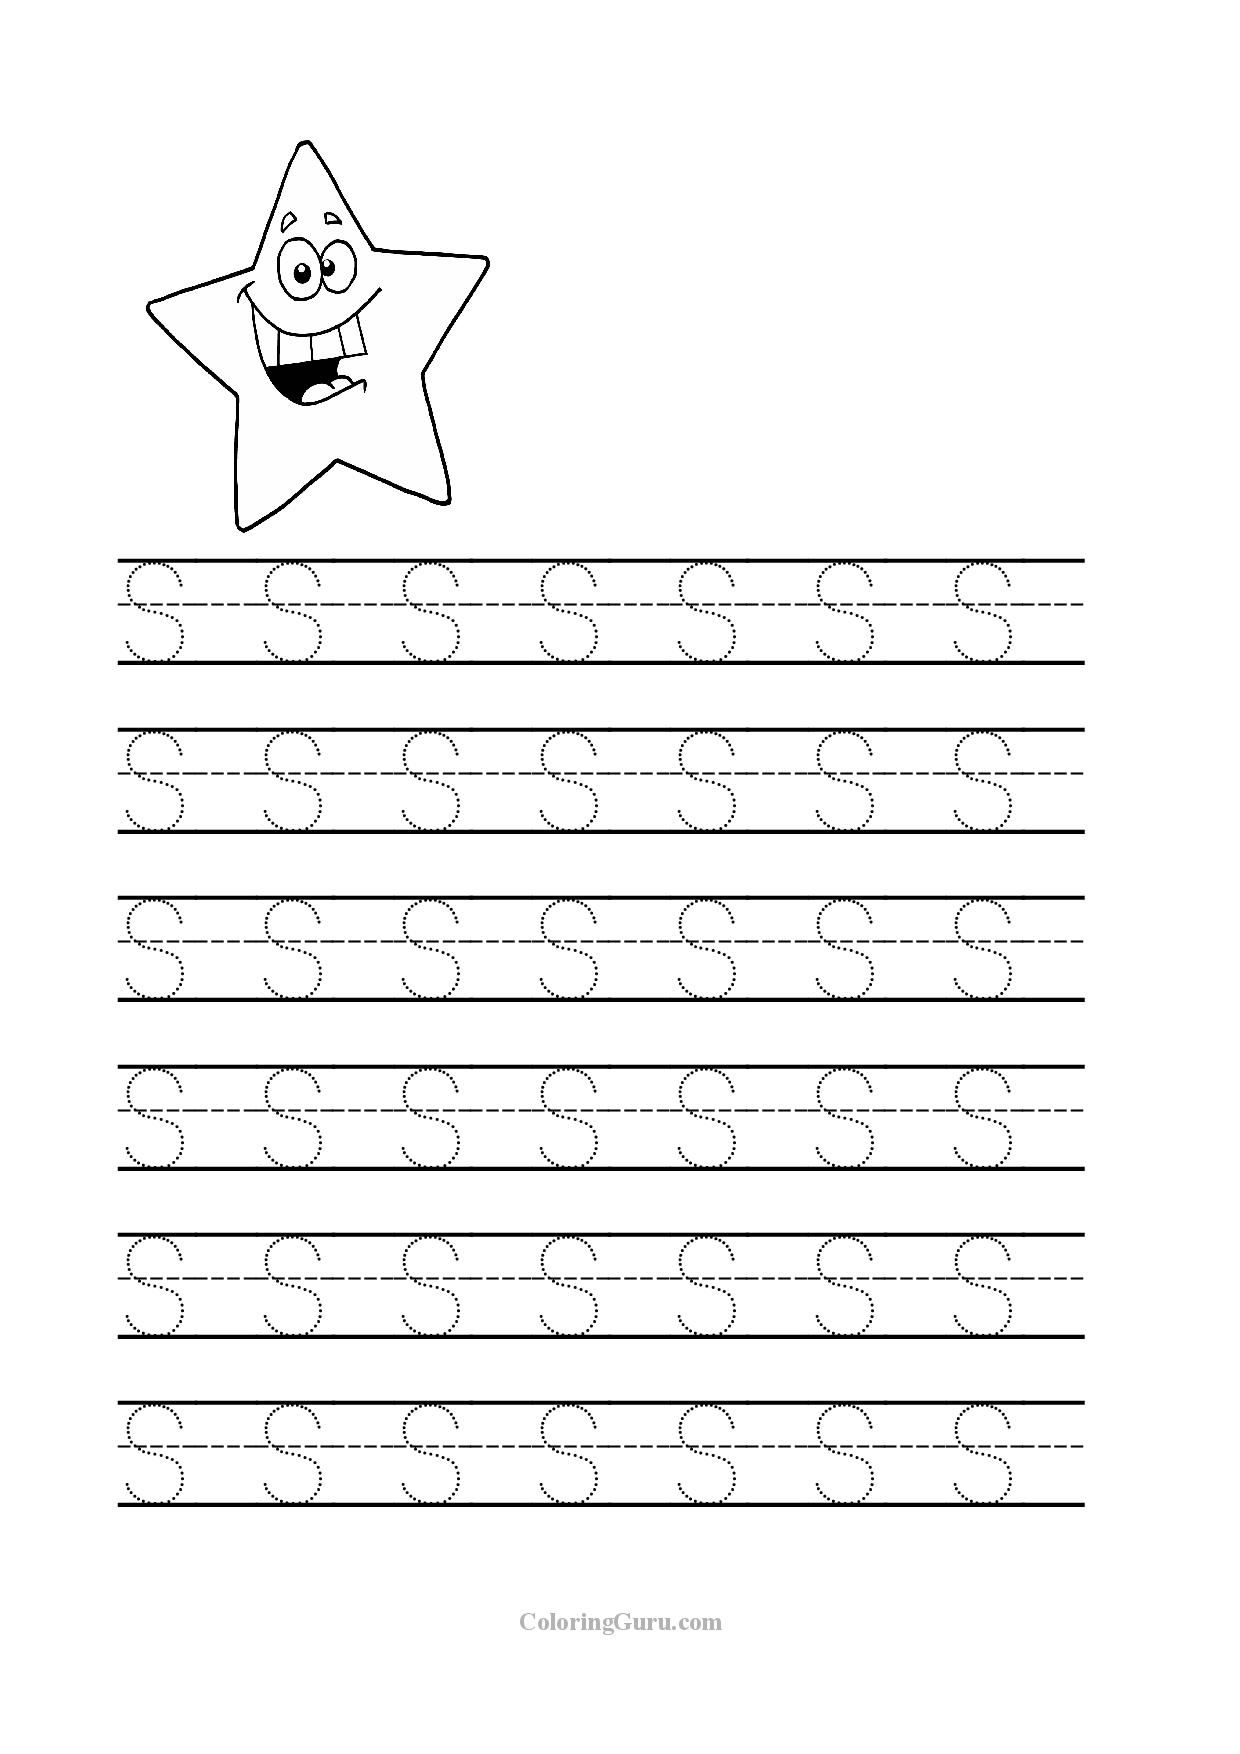 Free Printable Tracing Letter S Worksheets For Preschool with regard to Trace The Letter S Worksheets For Preschool